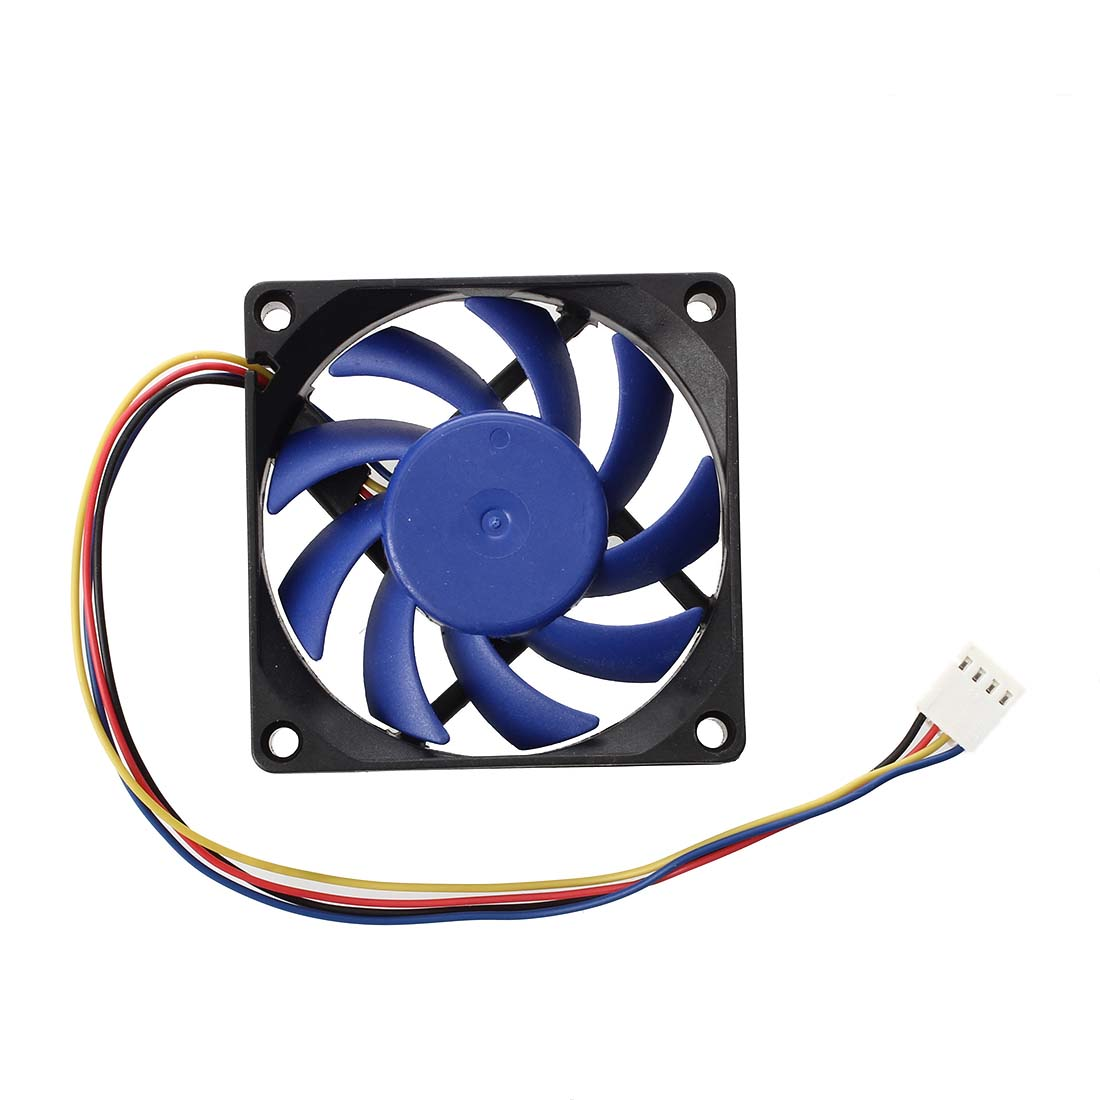 12V DC 32 <font><b>70mm</b></font> 4-Pin Computer Case CFM <font><b>PWM</b></font> CPU PC <font><b>Fan</b></font> Blue & Black image